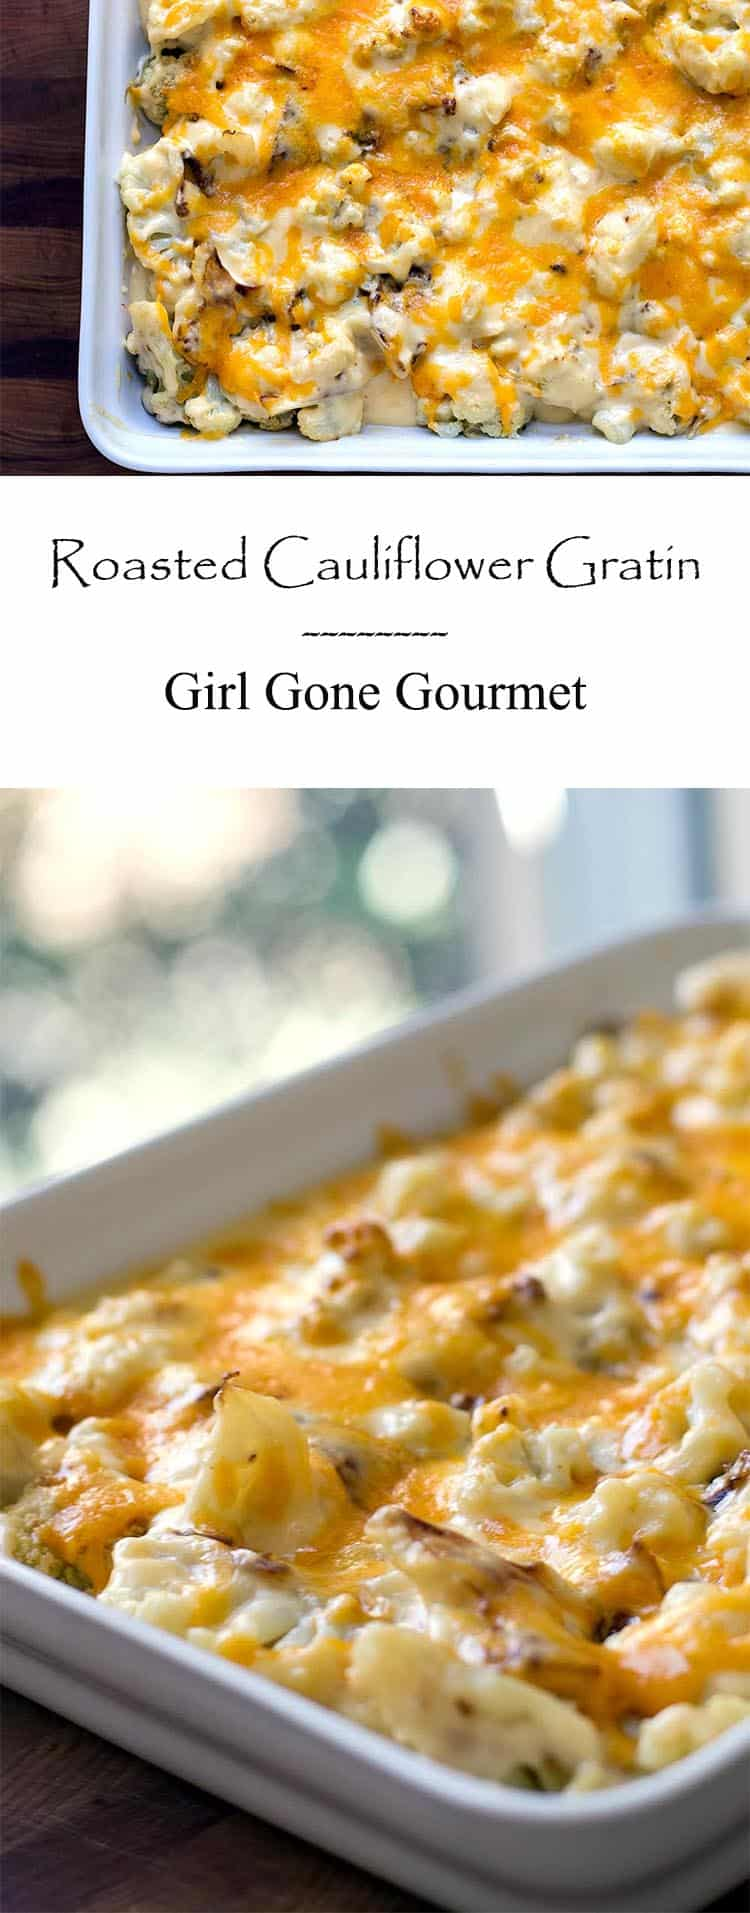 This creamy, cheesy gratin starts with a simple bechamel sauce - it's comfort food heaven! | girlgonegourmet.com